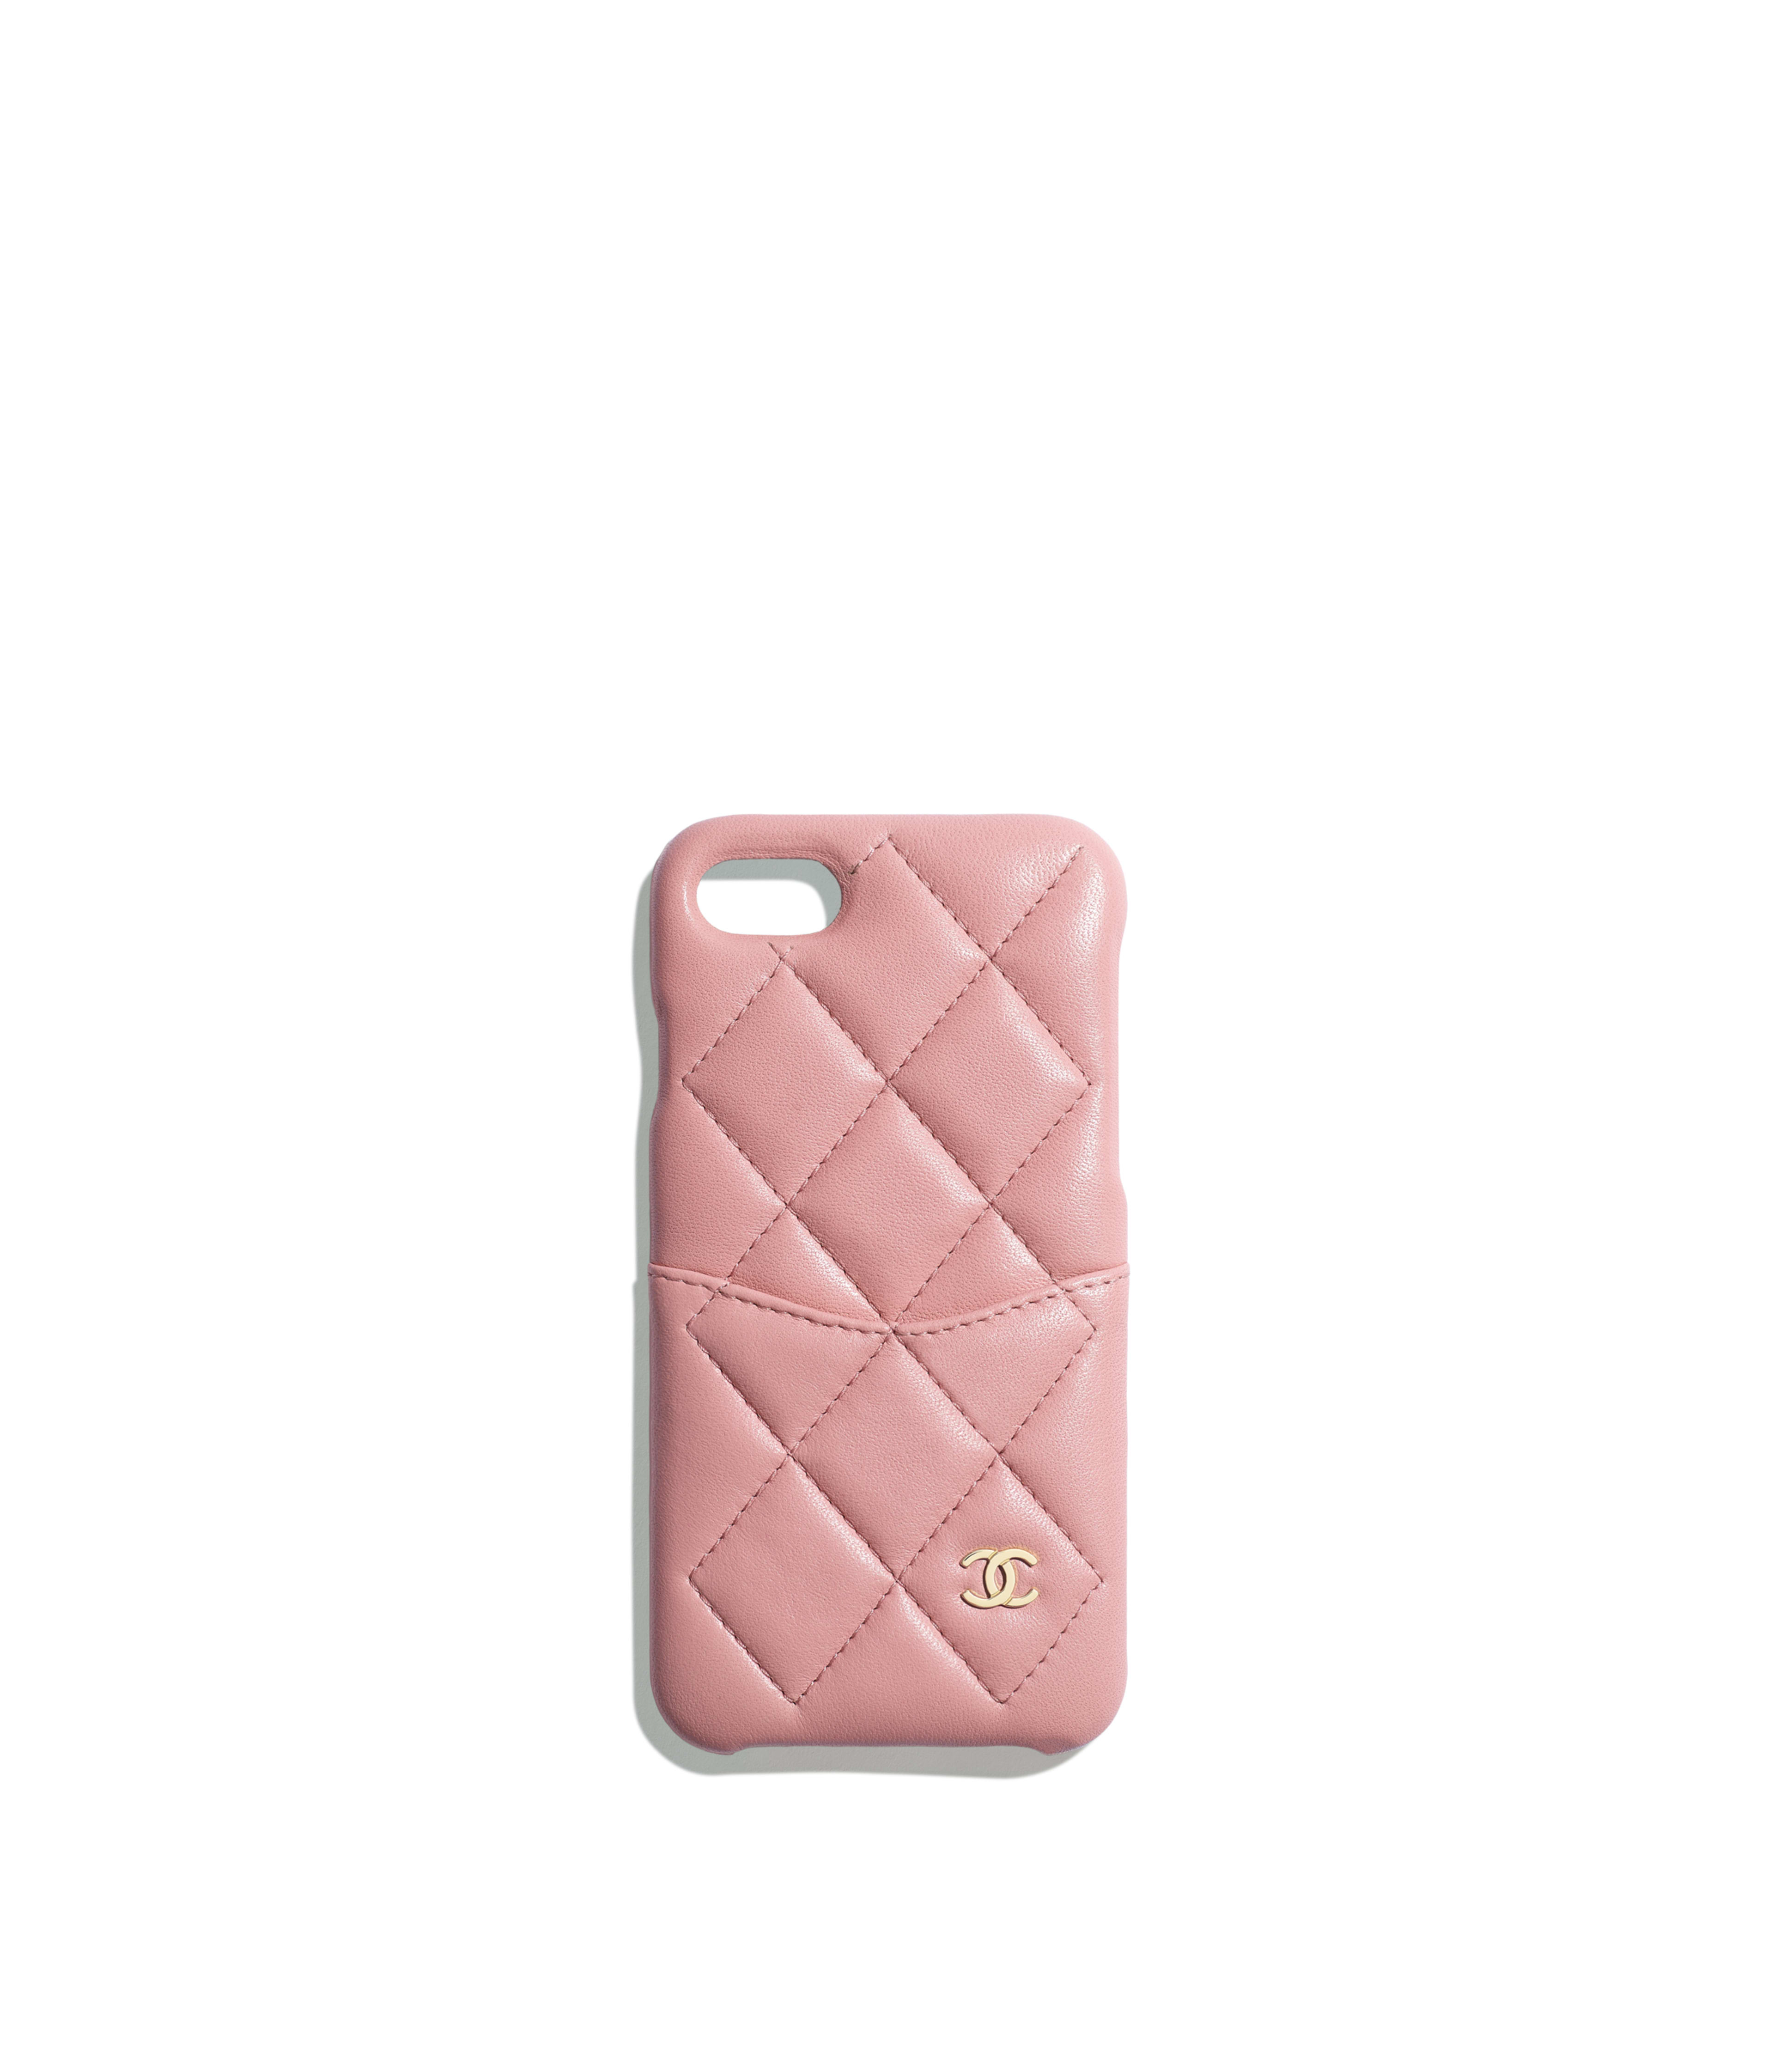 6eabdb6d092c Classic Case for iPhone 7 & 8 Lambskin & Gold-Tone Metal, Pink Ref.  A83563Y01295N0897